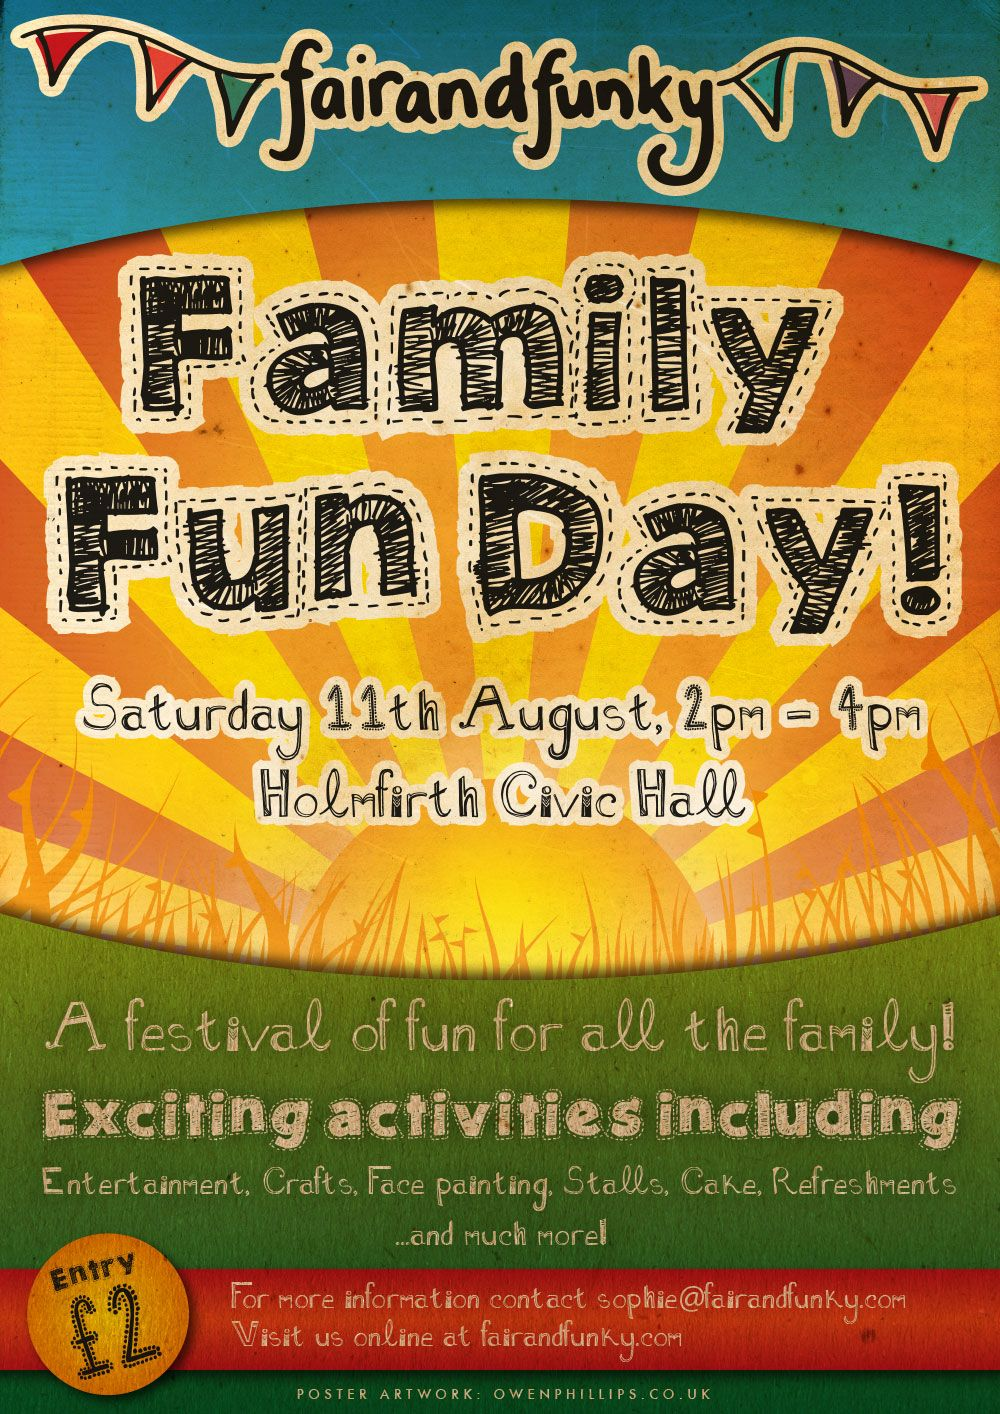 Family Day Poster Google Search Family Fun Day Poster Artwork Poster Design